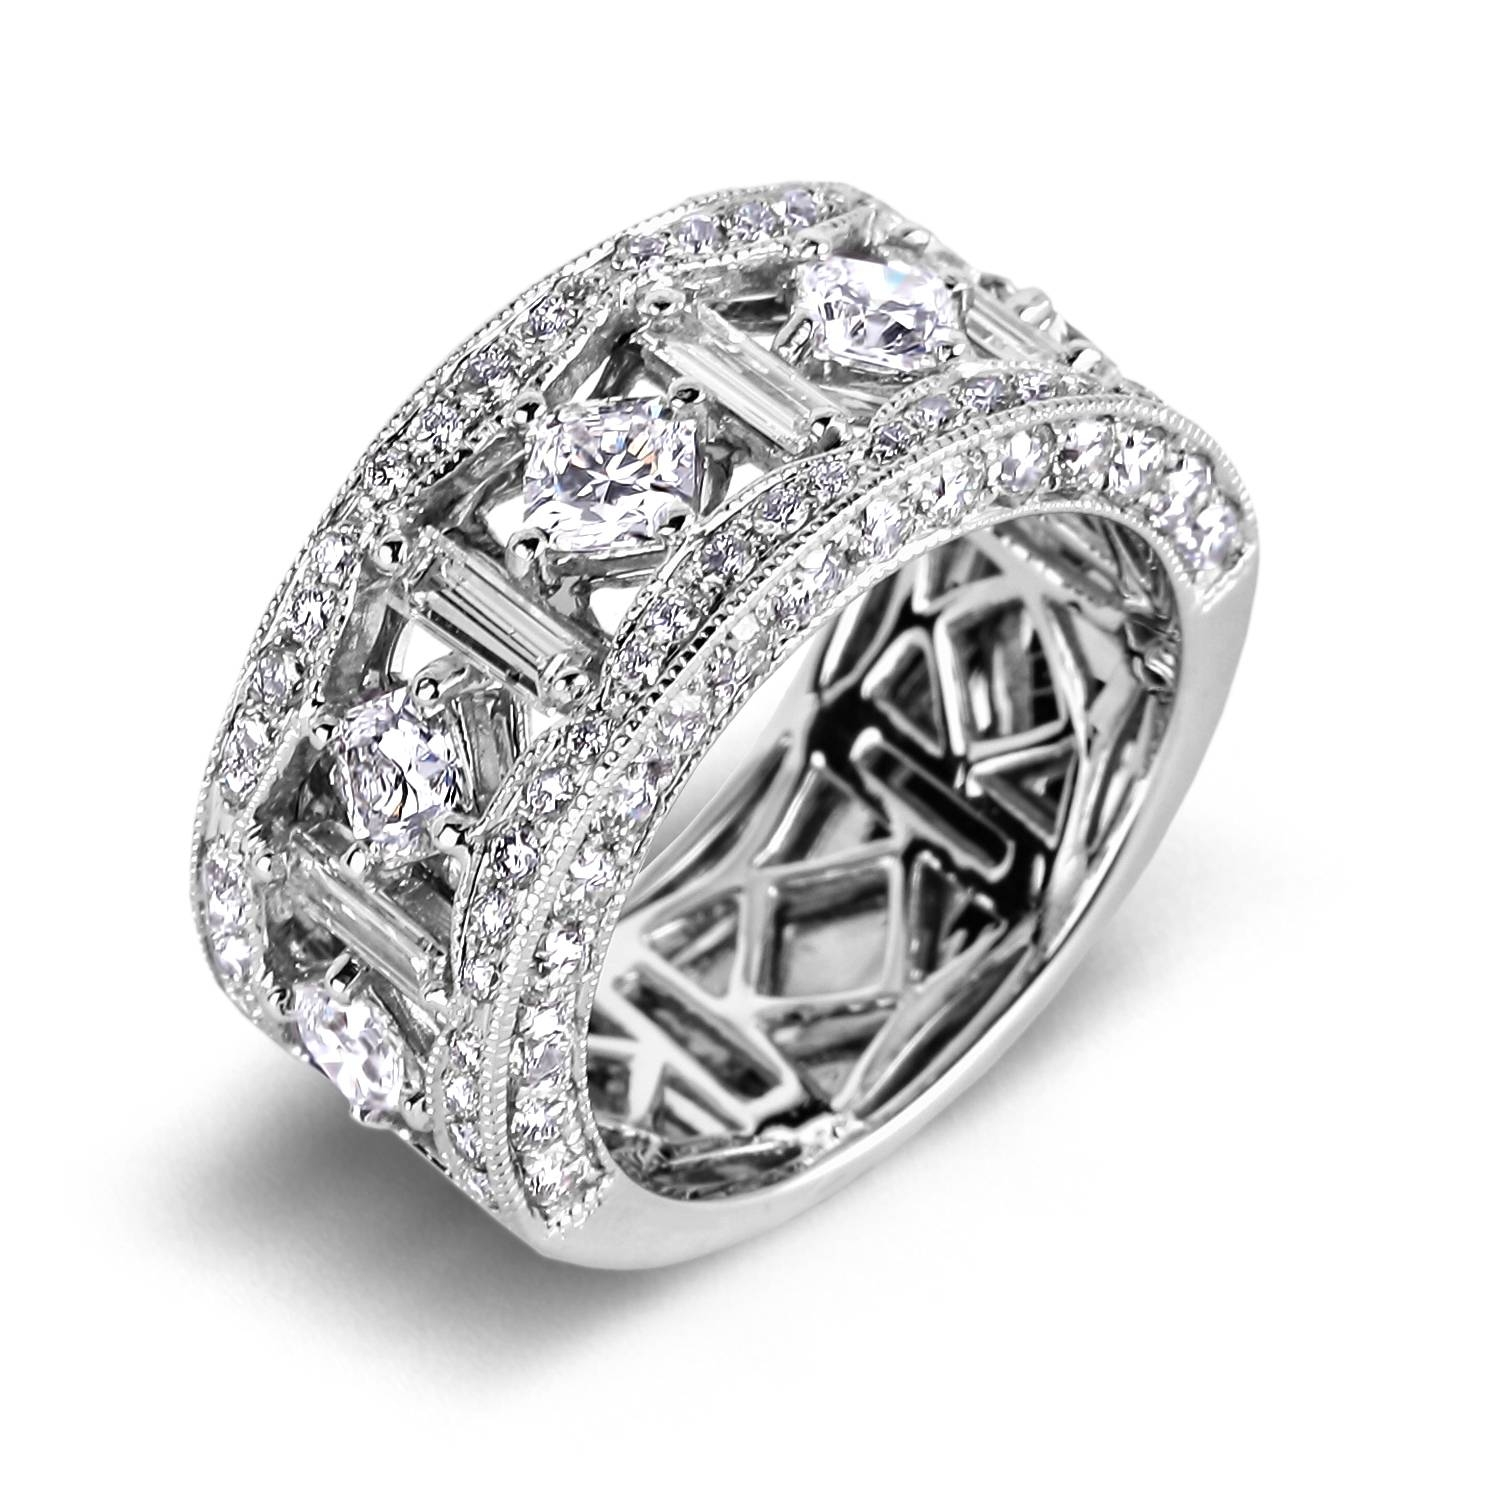 Wedding Anniversary Rings Diamonds | Wedding Ideas Pertaining To Newest Anniversary Rings With Baguettes (View 21 of 25)